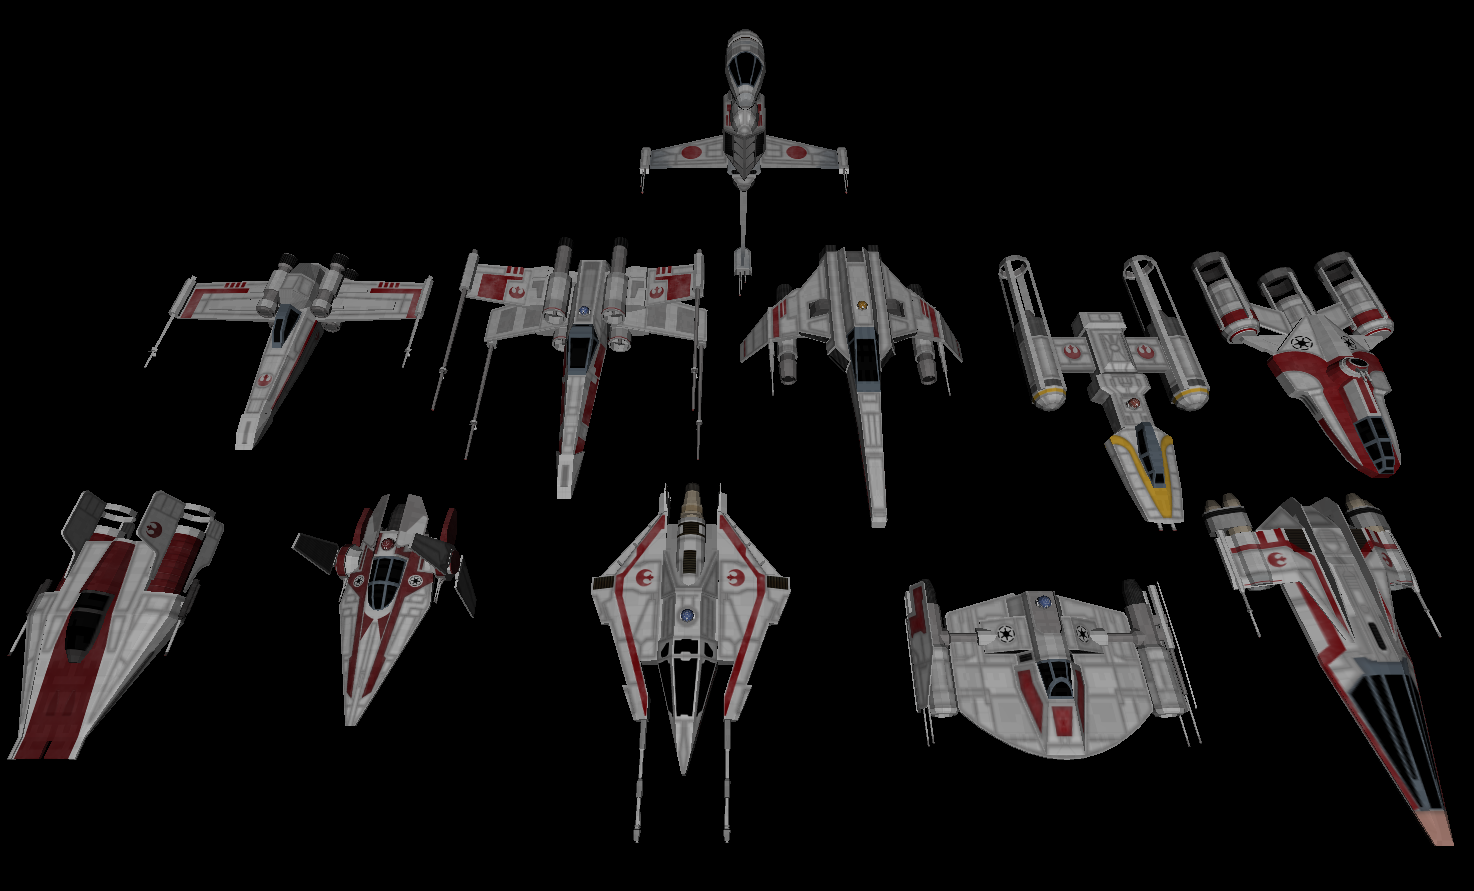 rebel_and_republic_starfighters_by_majestic_msfc-d5rj86t.png